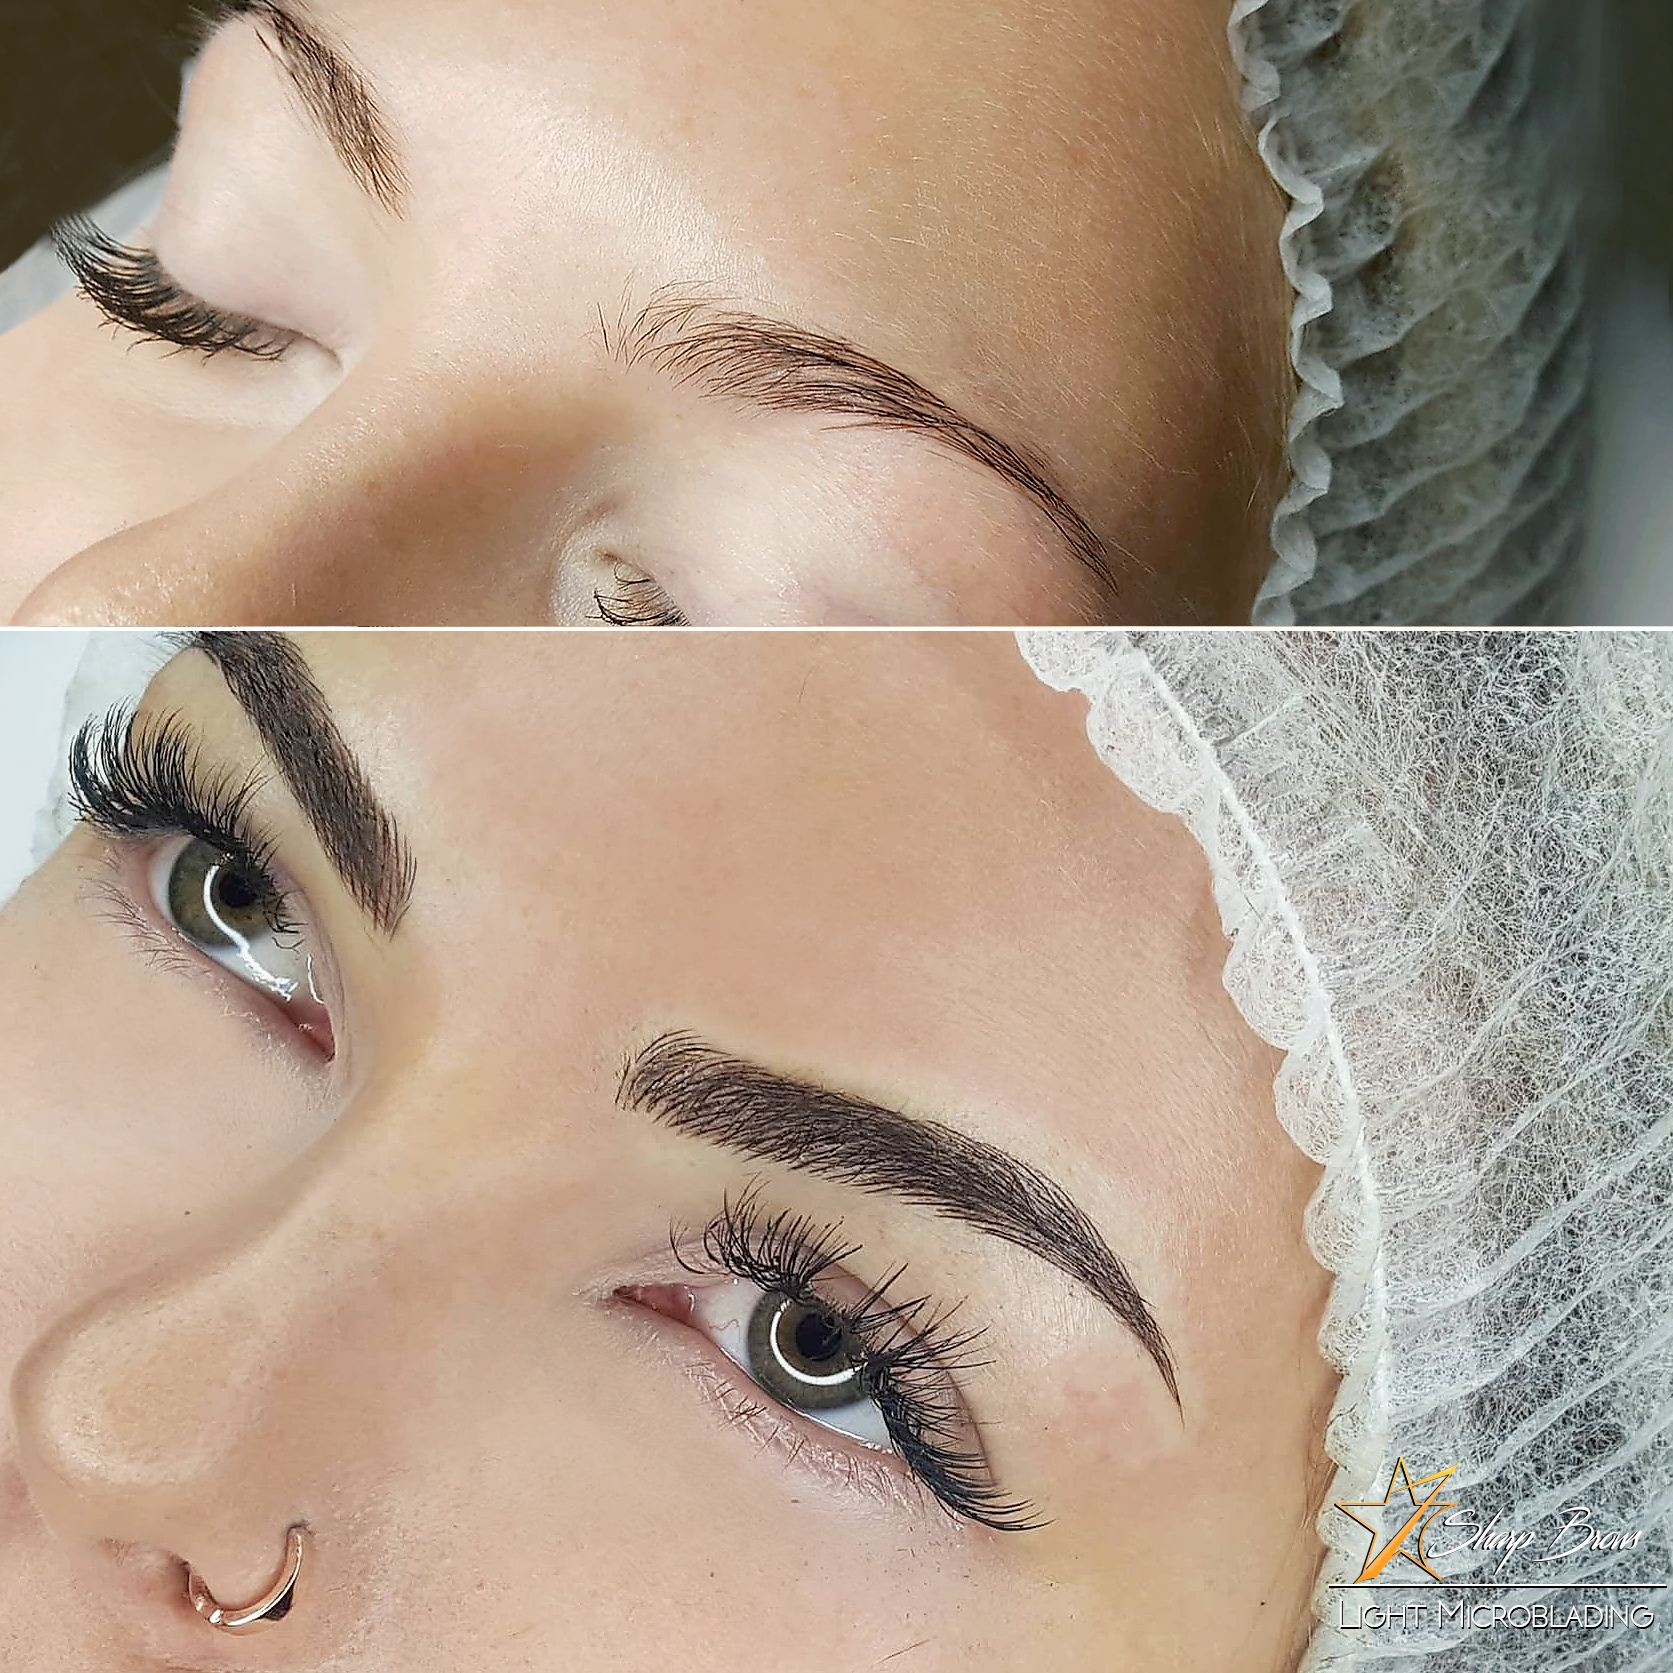 Light microblading does not only change the shape and texture of brows. It changes the whole face and clients become literally even prettier than they were before.